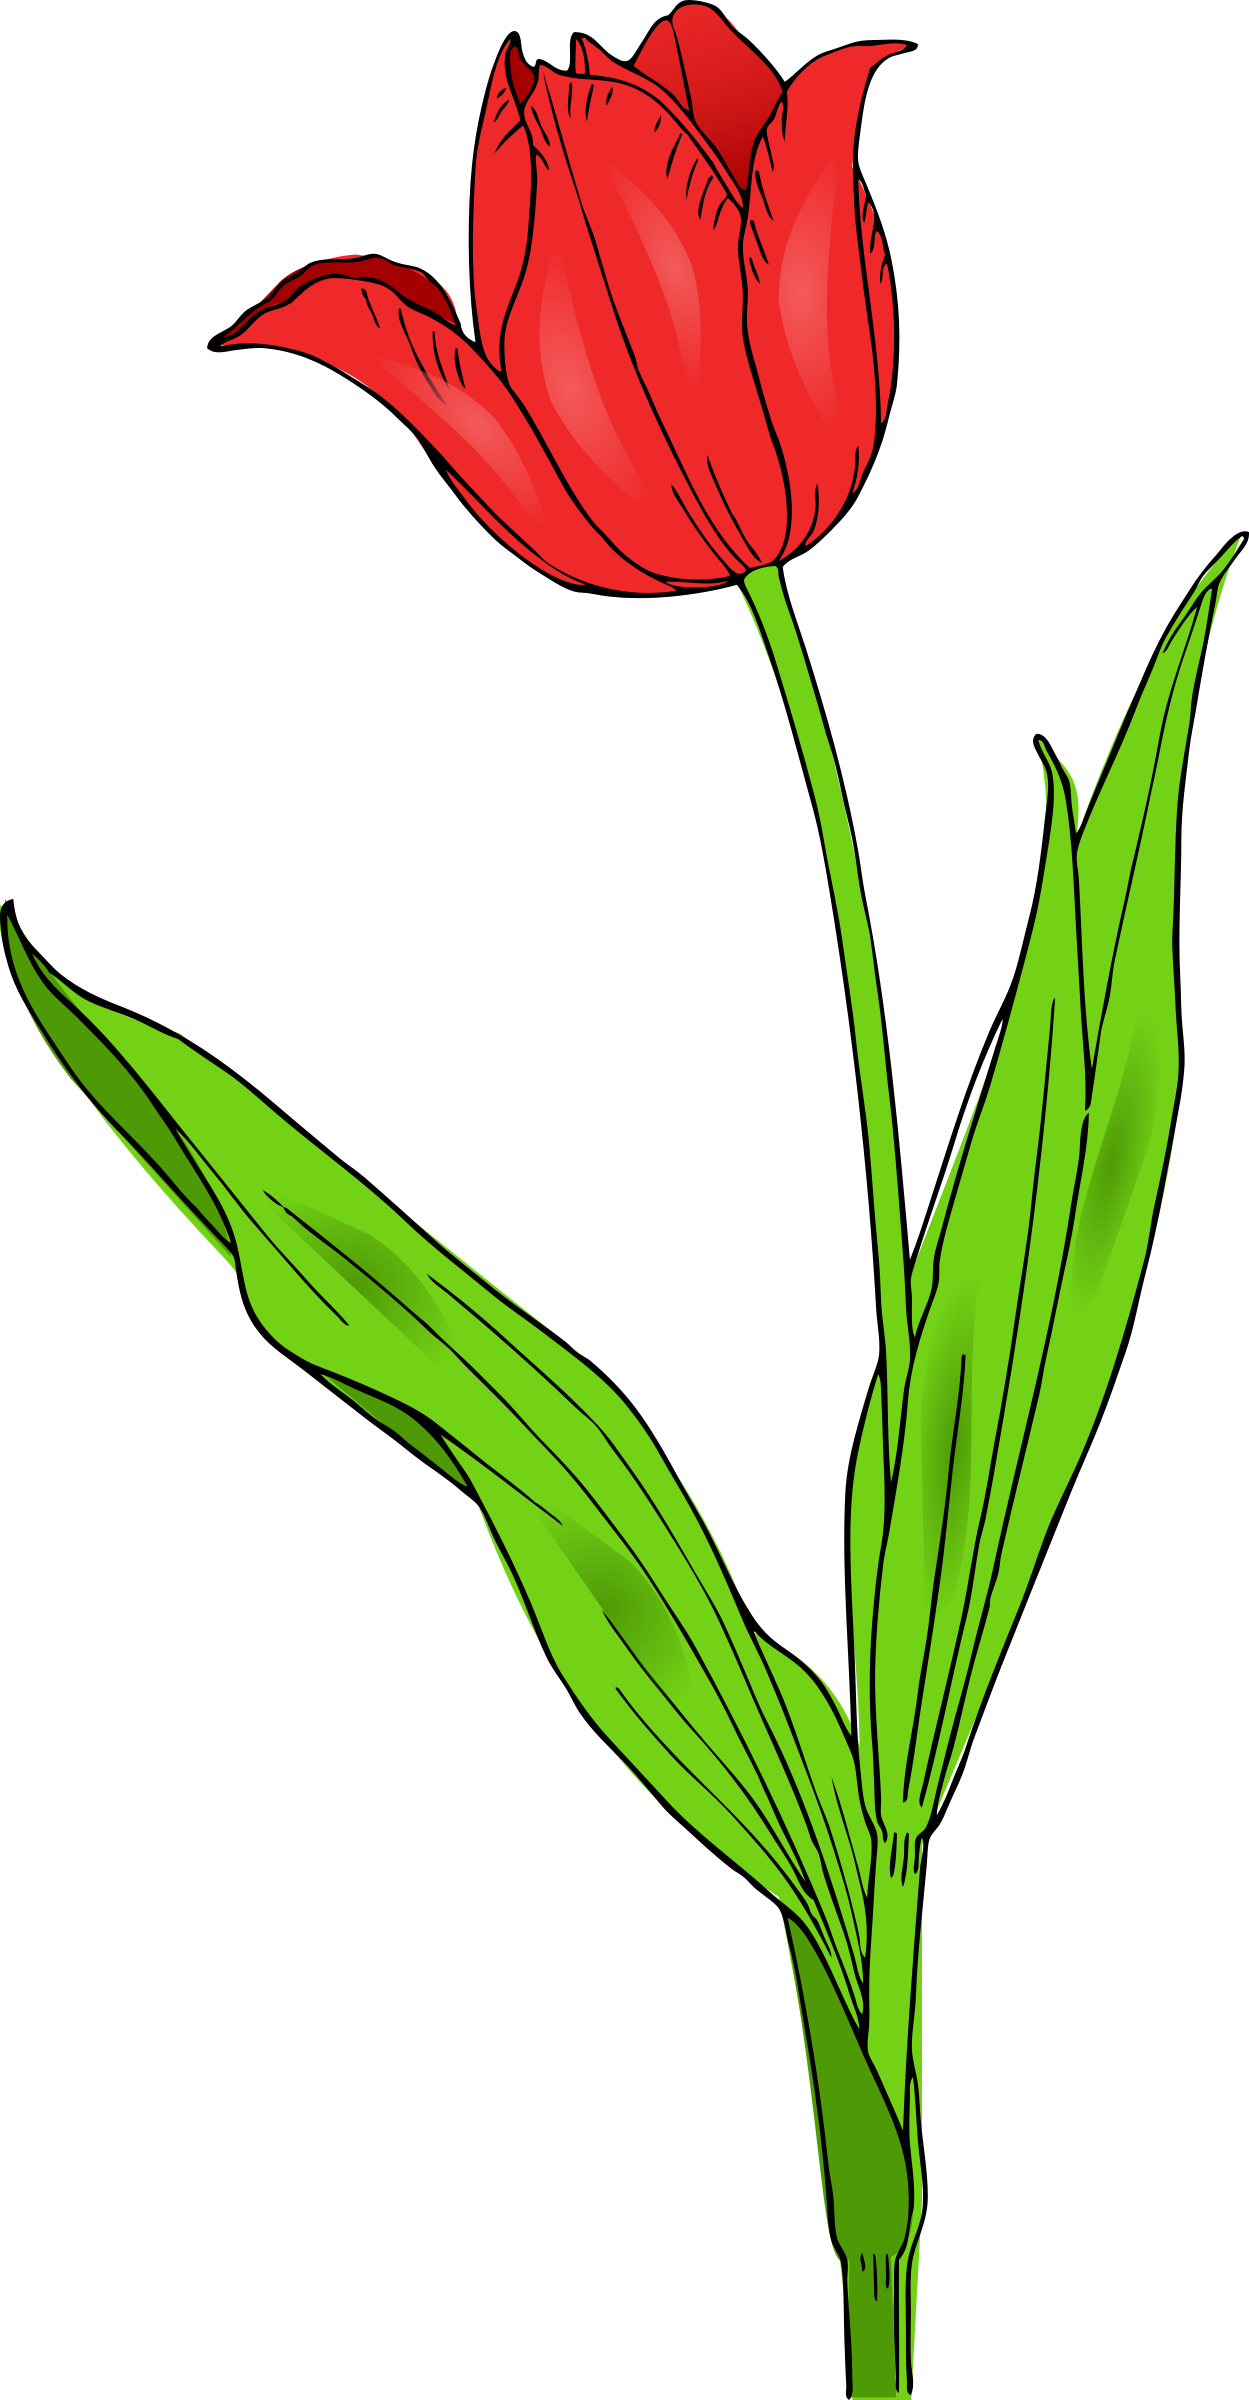 Red tulip clipart banner library stock colored tulip by @pitr, A colored red tulip., on ... banner library stock